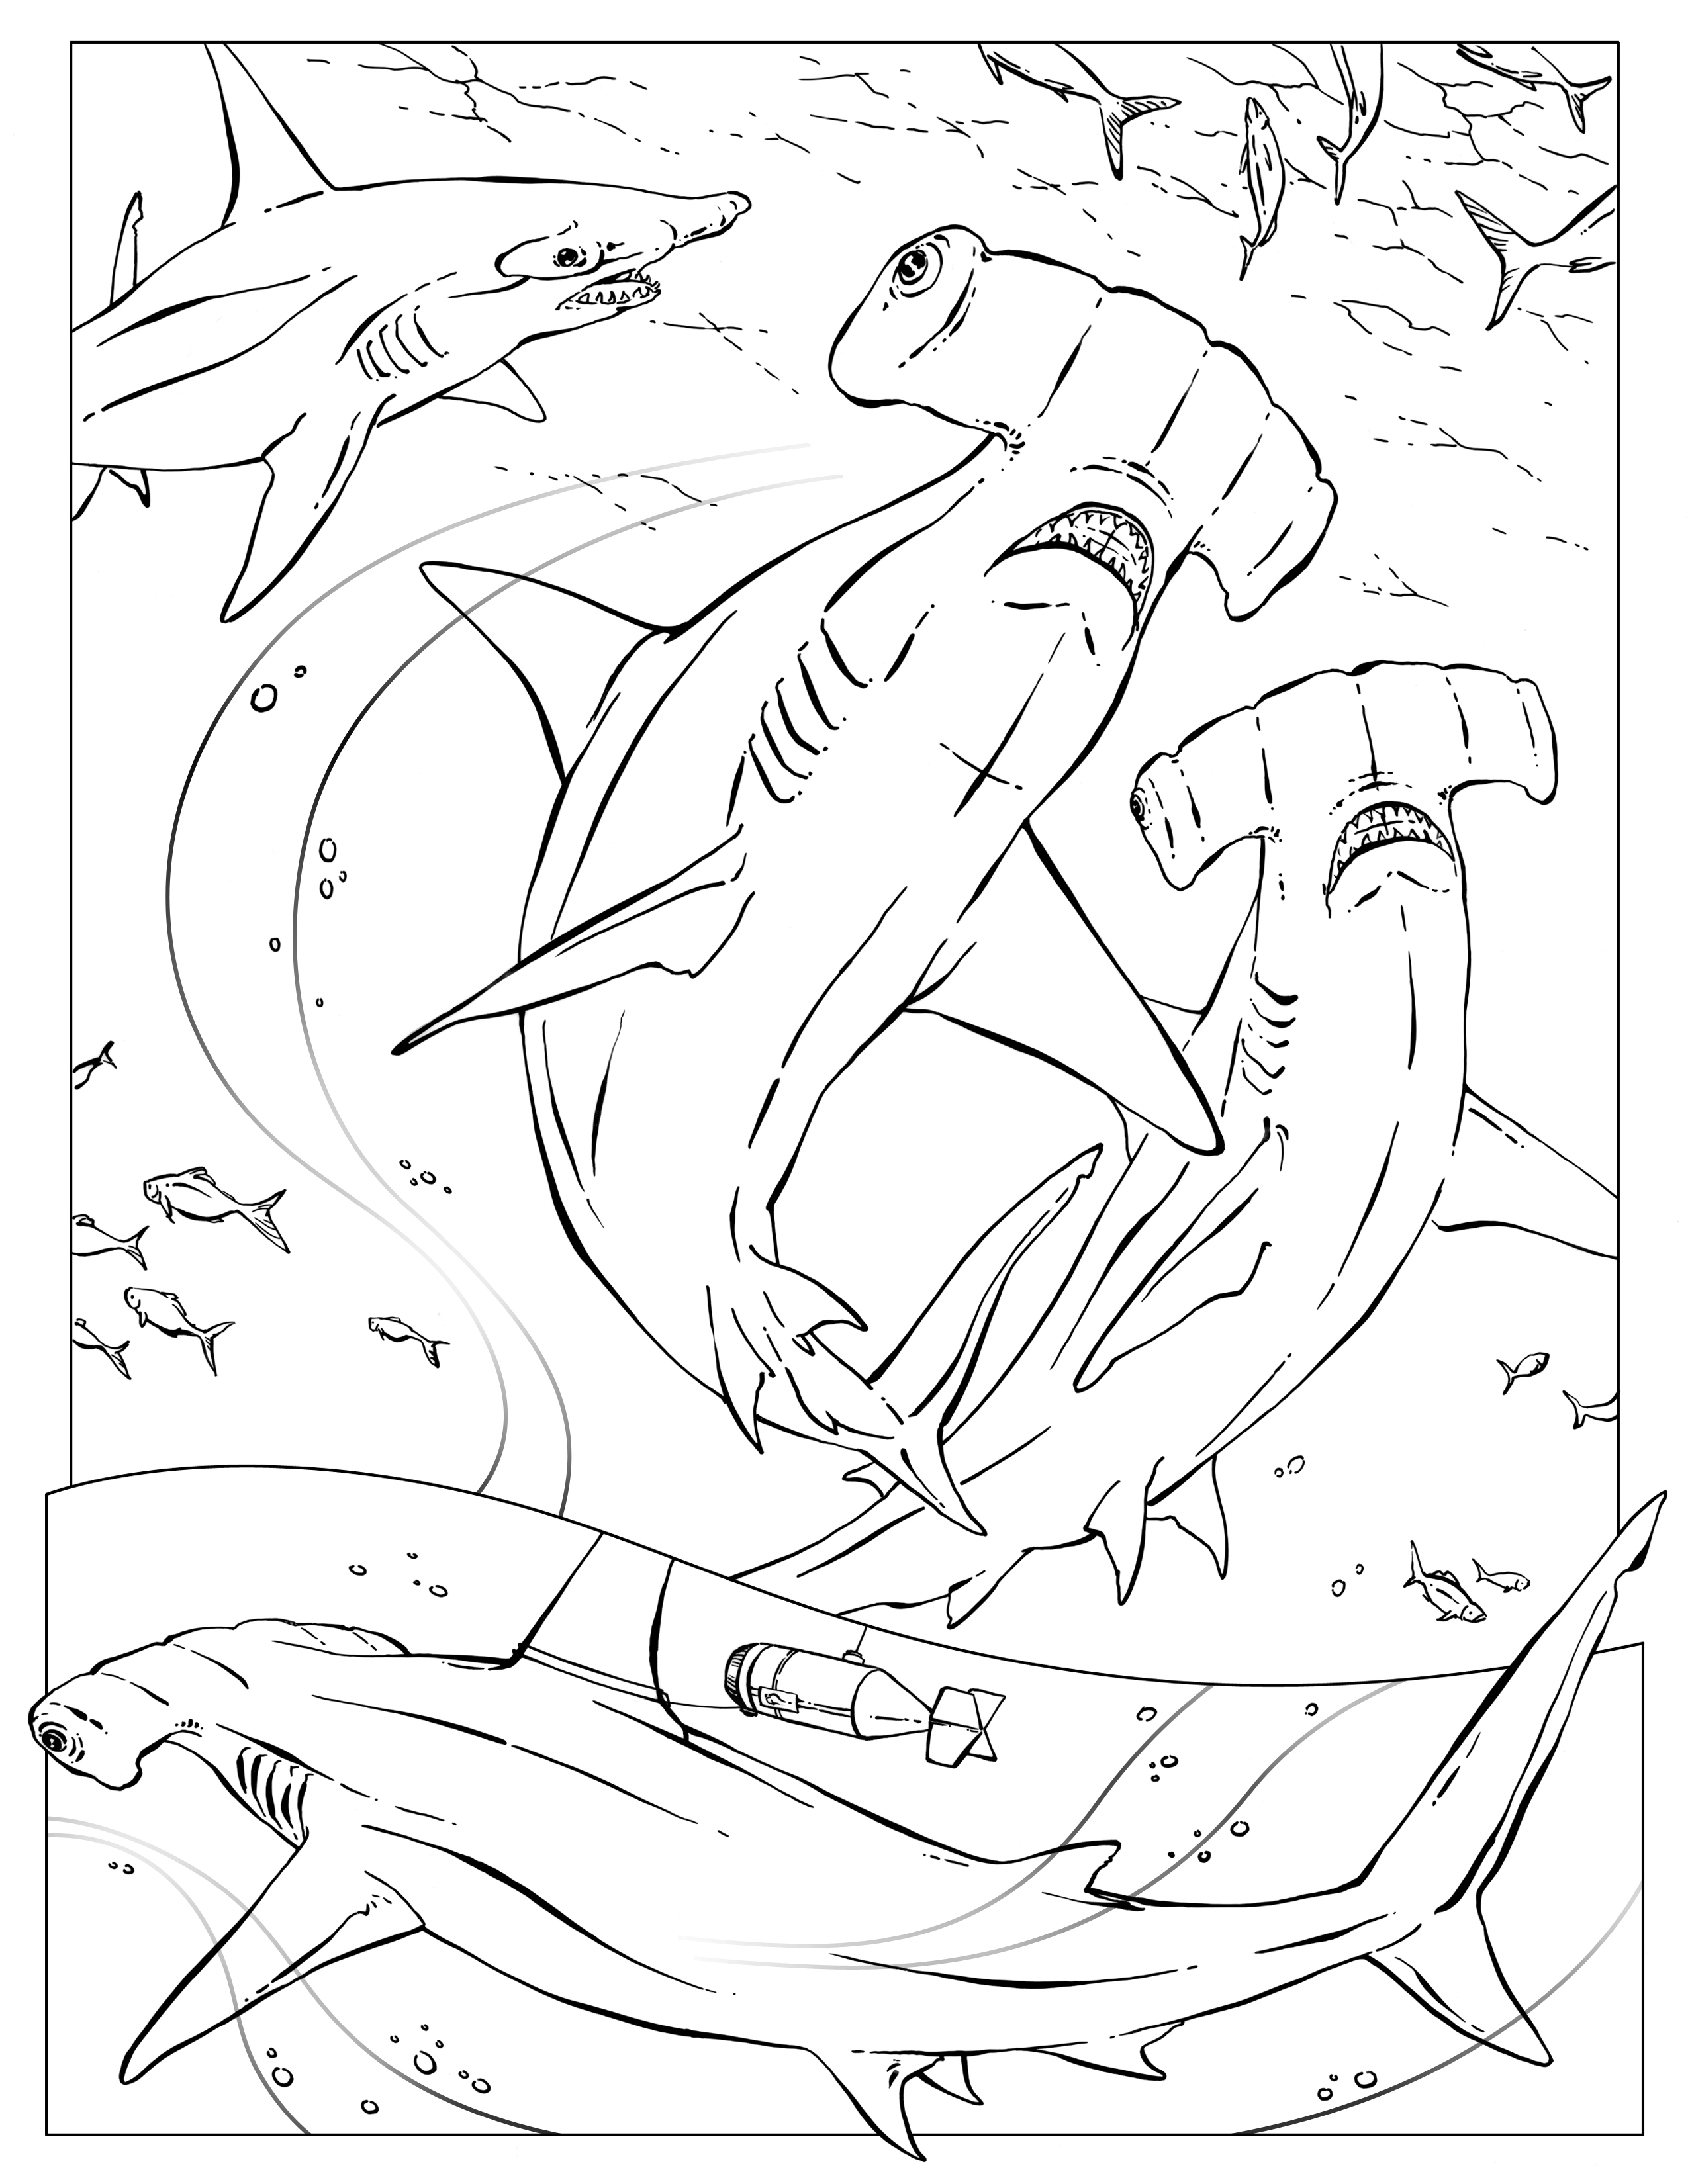 hammerhead shark coloring page - hammerhead shark coloring pages to print